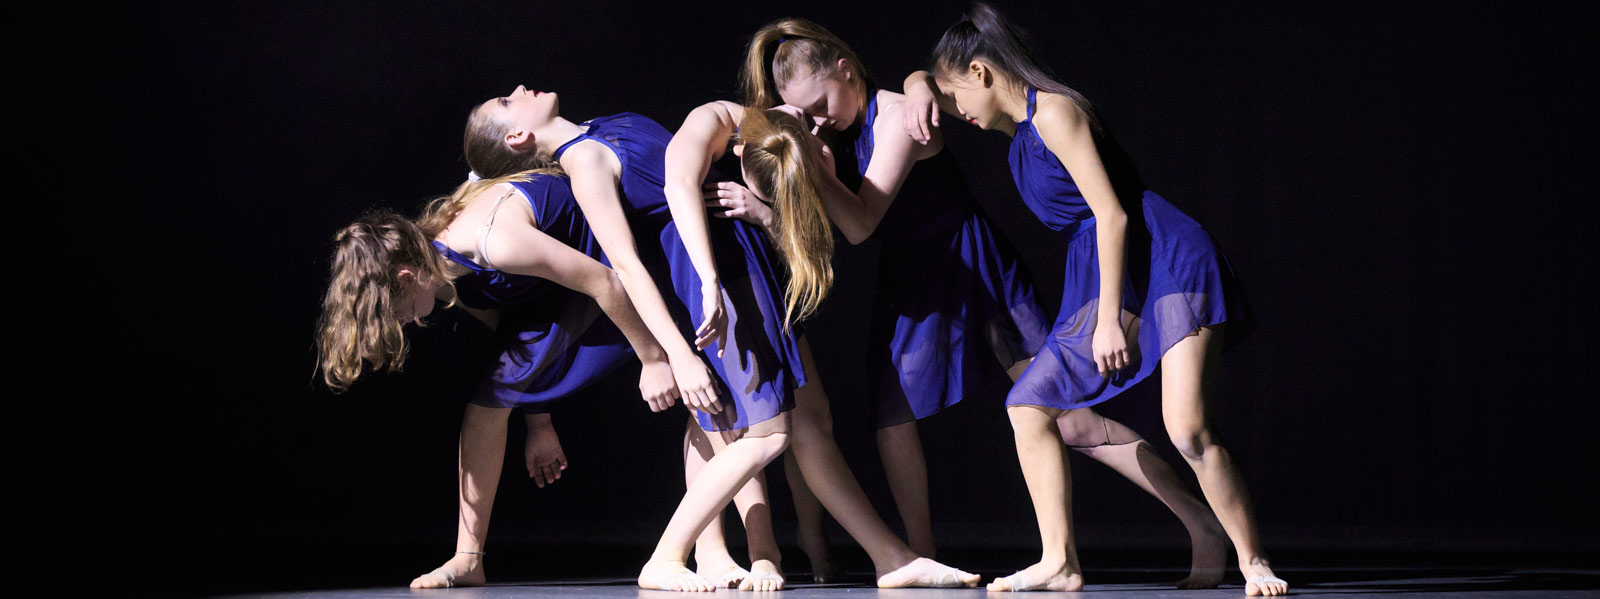 Saint-Kentigern-Senior-College-Dancing-Showcase.jpg